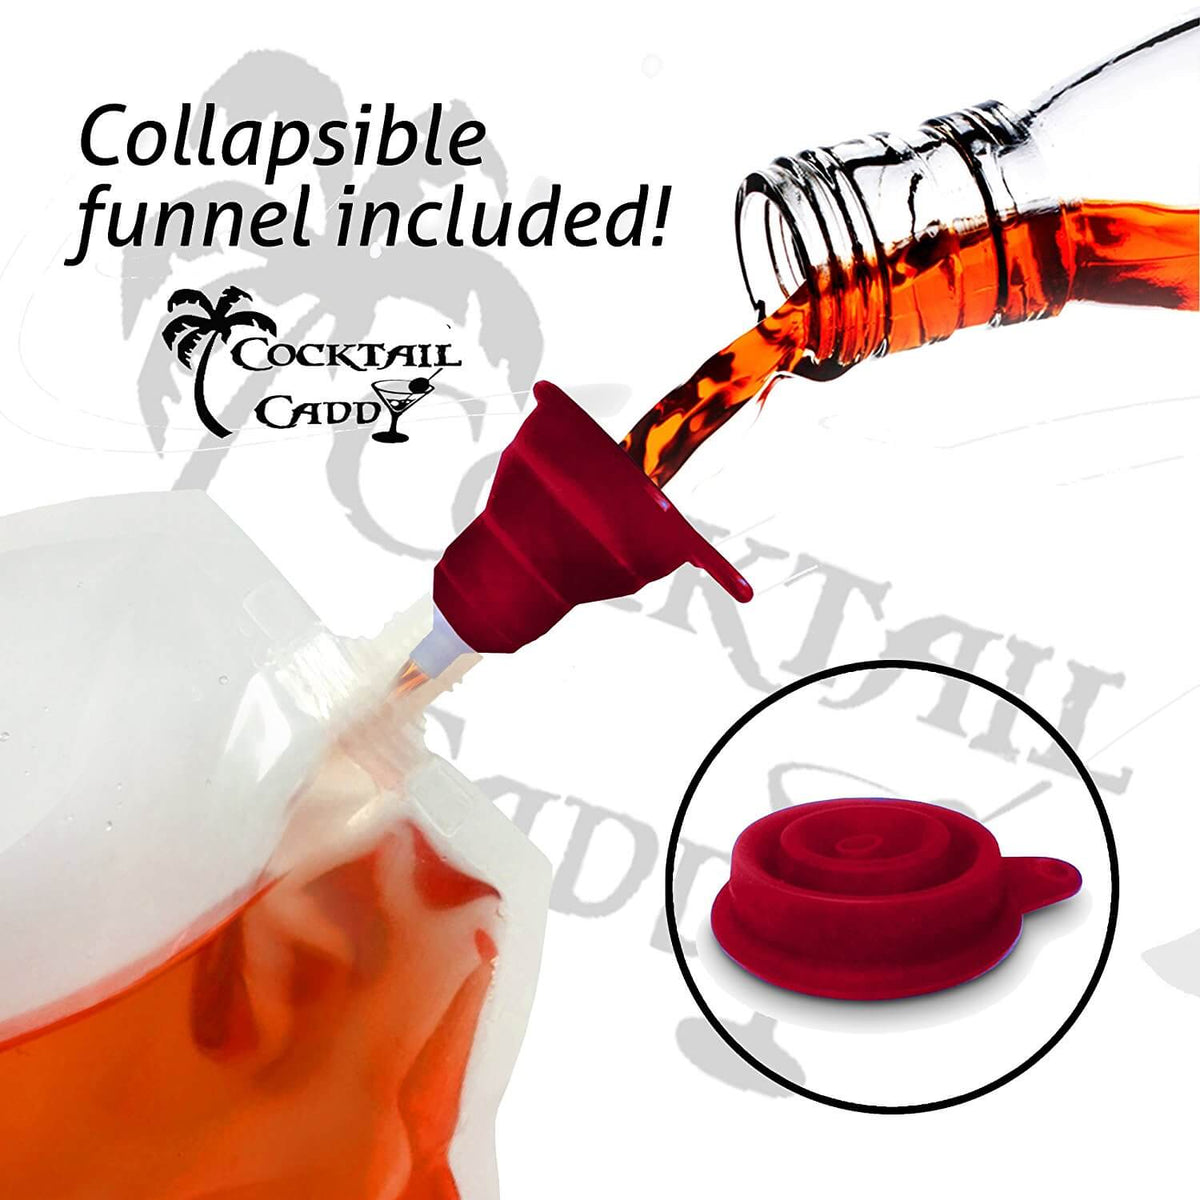 Smuggler's Cruise Kit For Liquor - Concealable and Reusable Heavy Duty Flasks